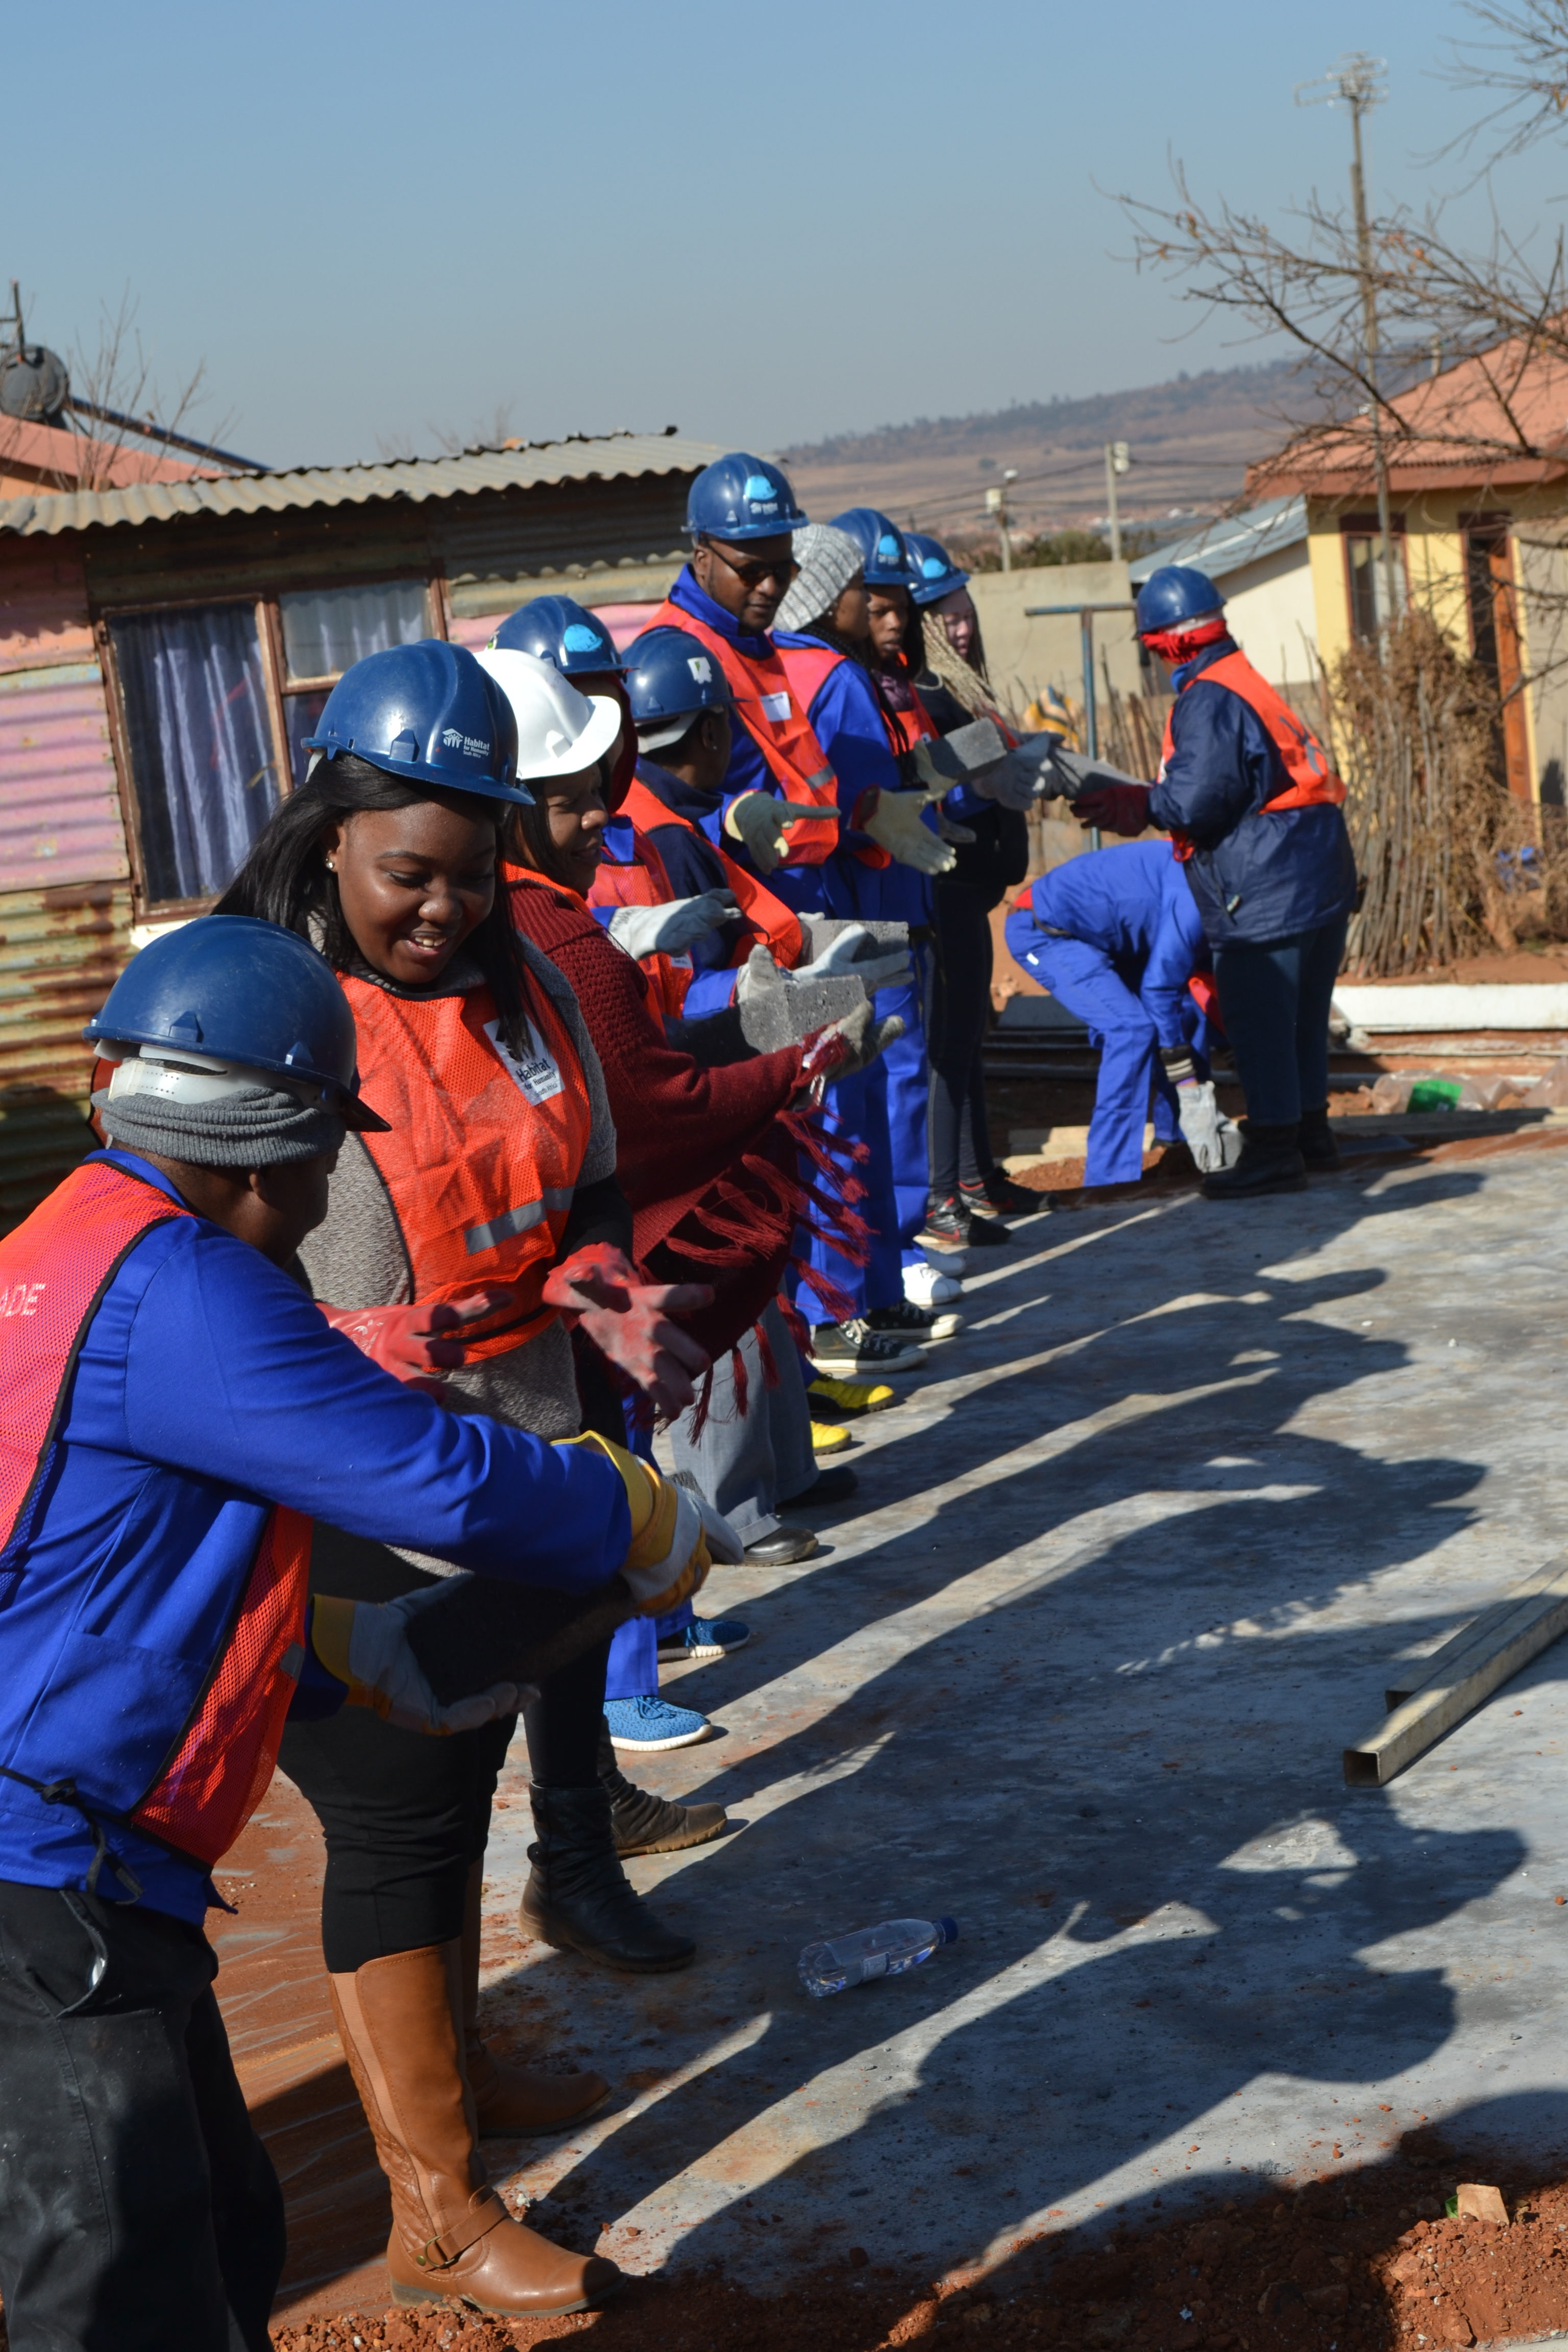 DSC 0775 e1533027385855 - Social development: Nelson Mandela Build Week 2018